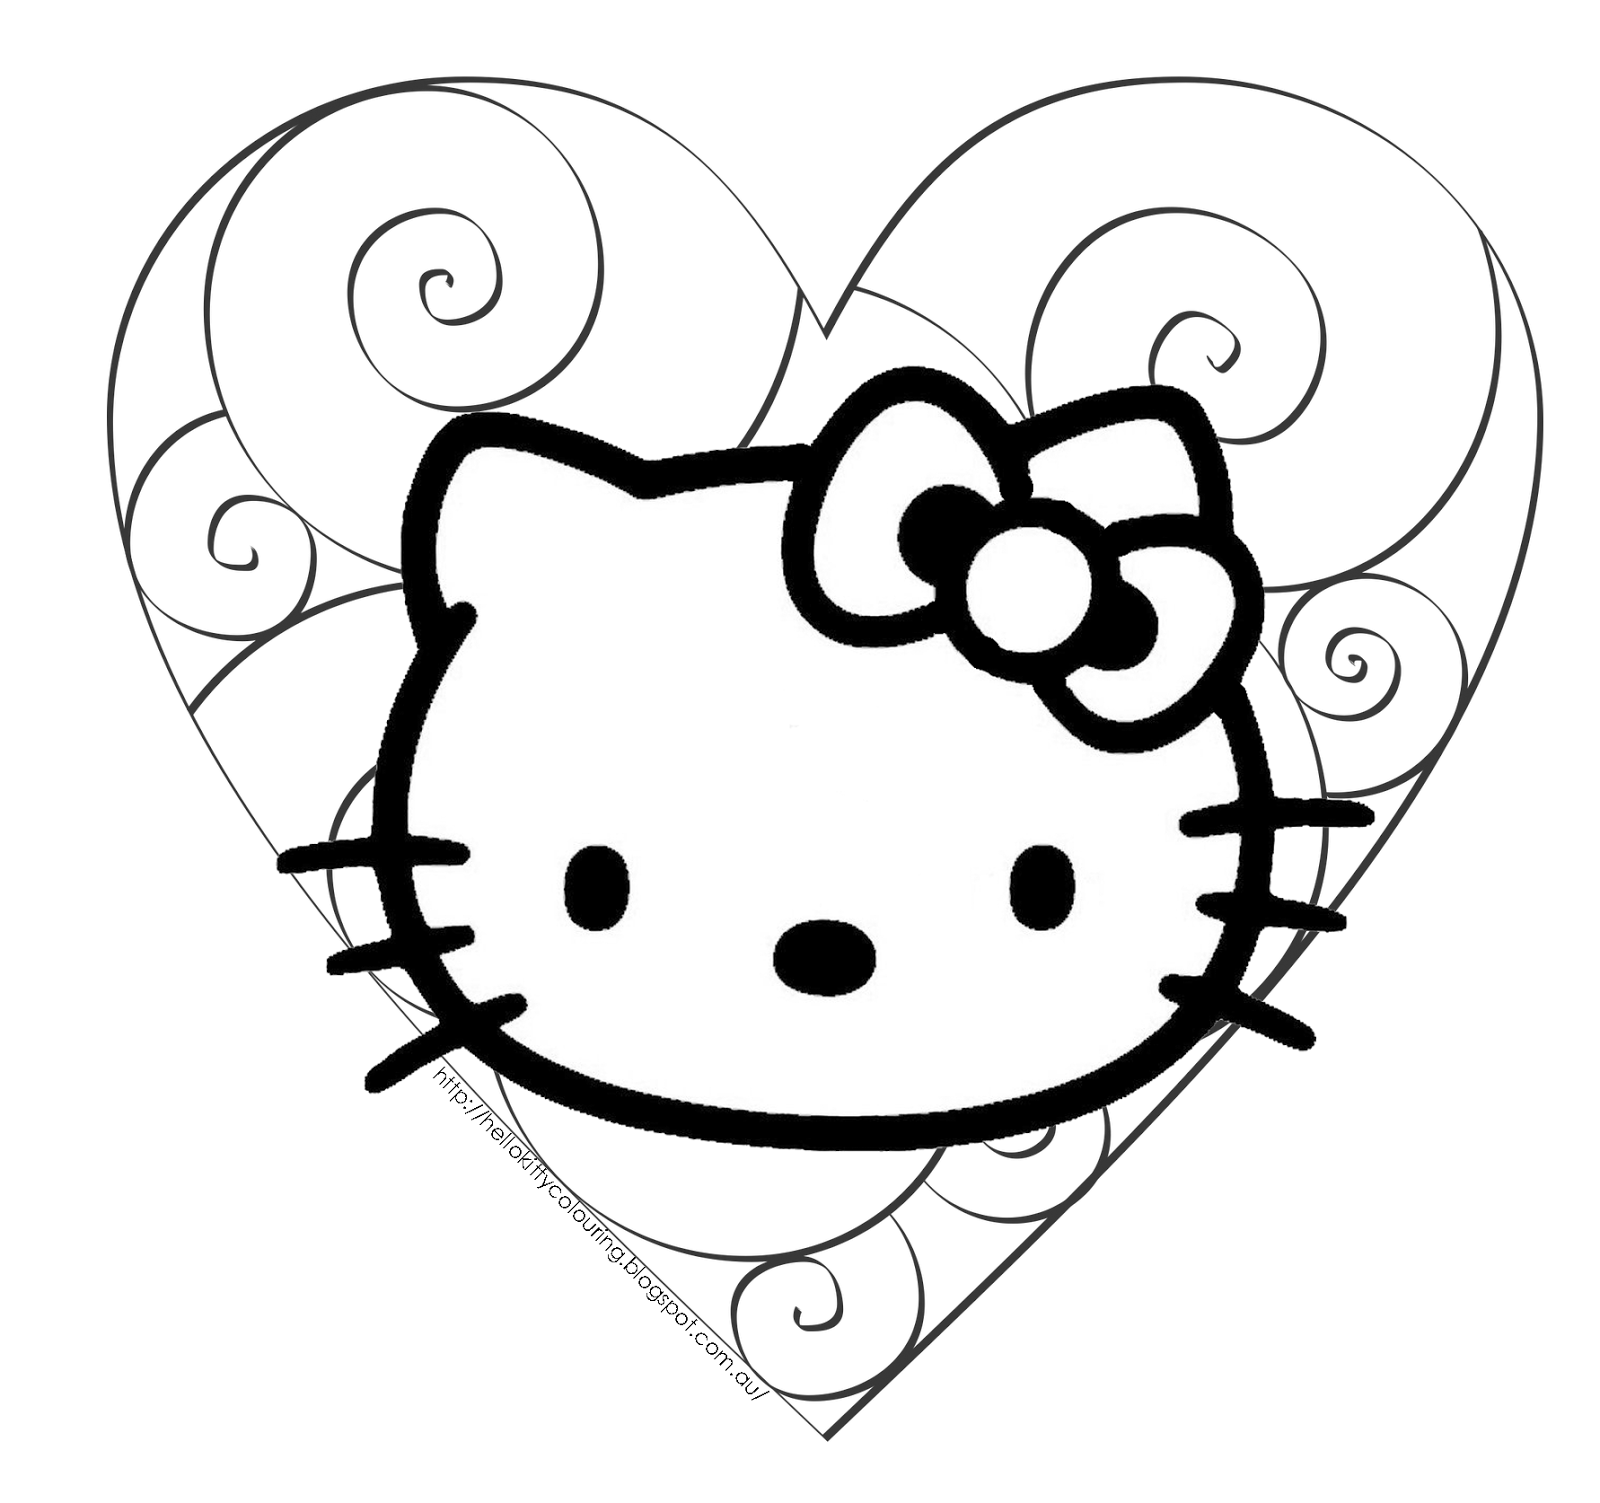 coloring hello kitty hello kitty coloring play free coloring game online coloring kitty hello